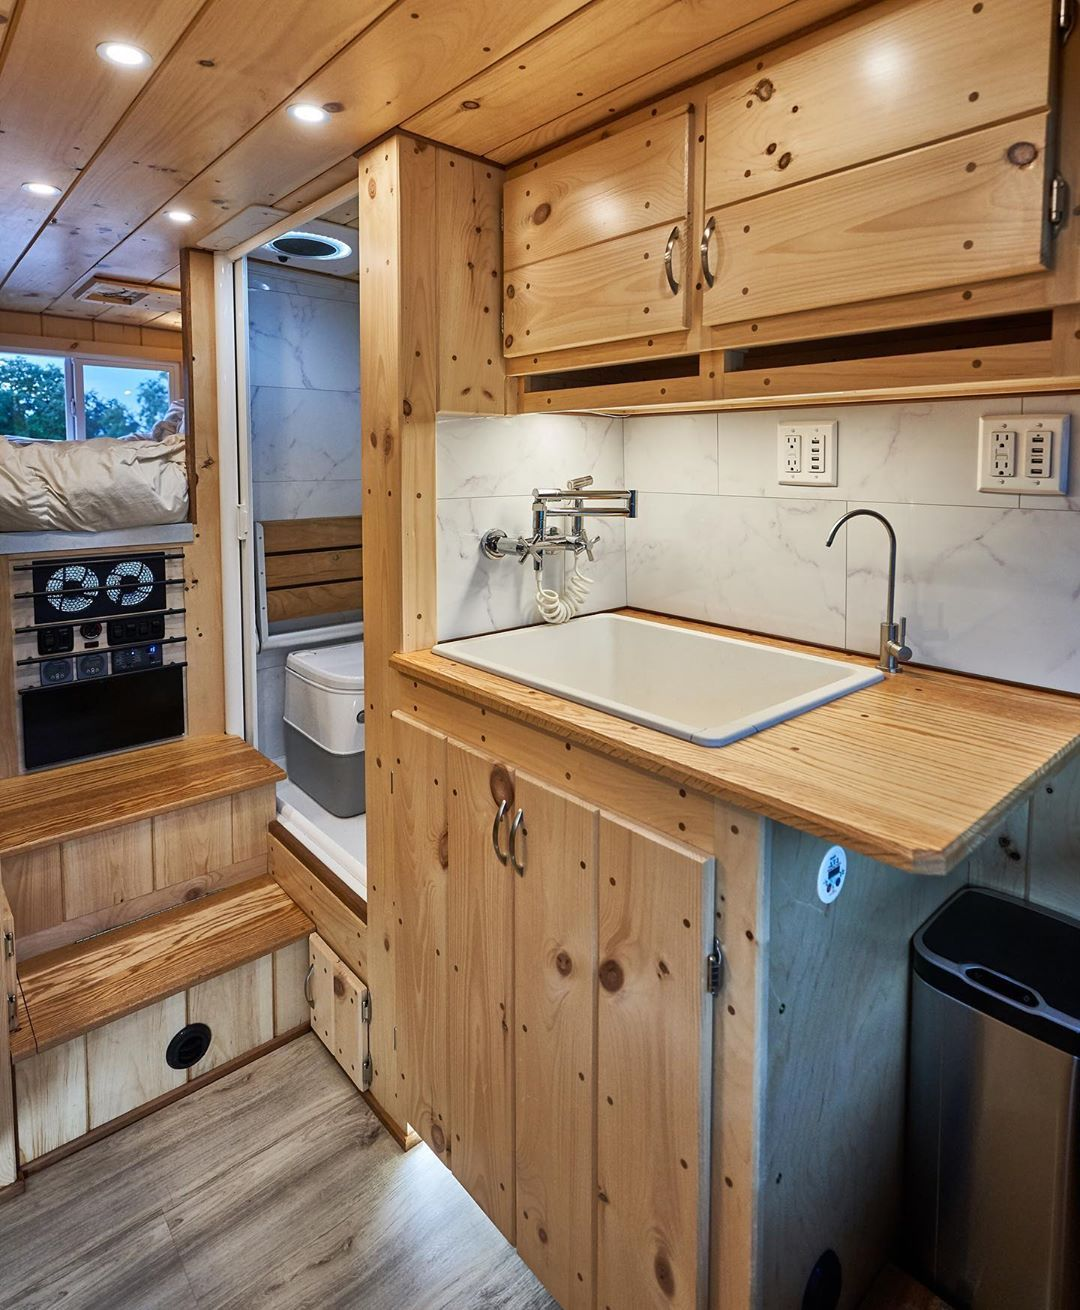 Dodge ProMaster Camper Conversion Ideas